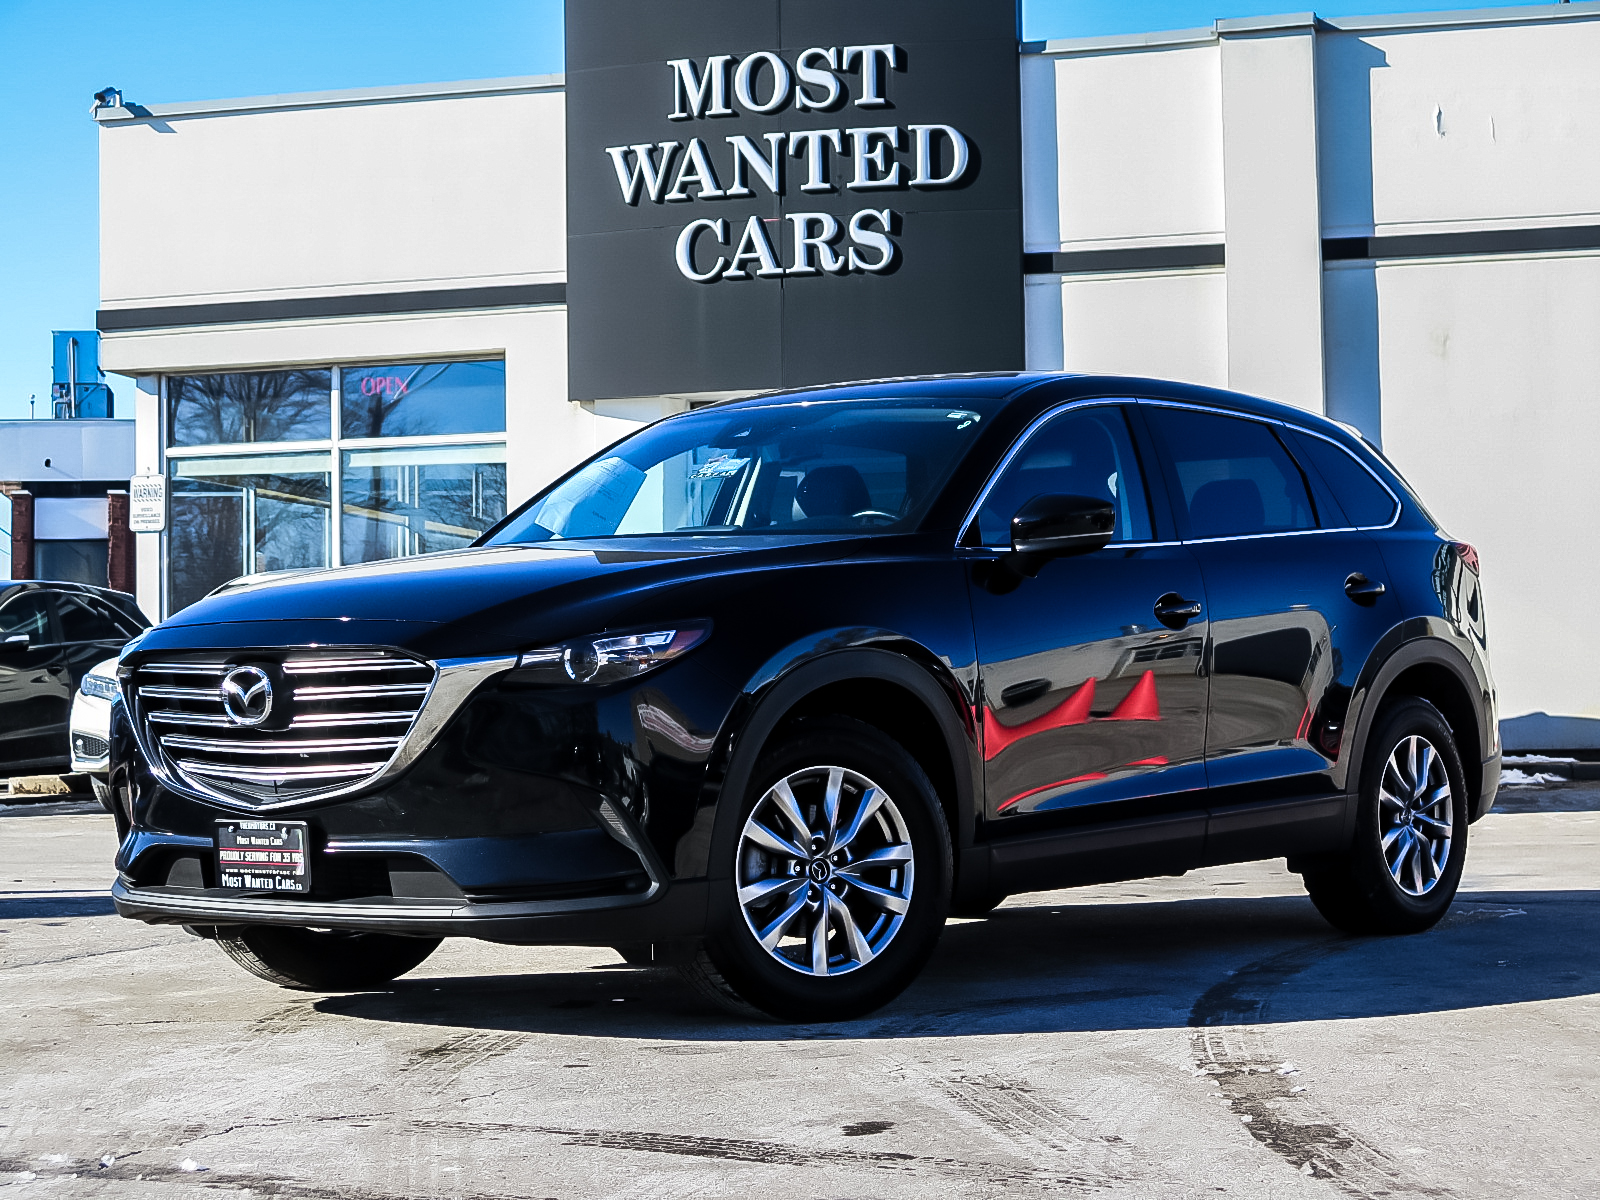 used 2018 Mazda CX-9 car, priced at $28,982